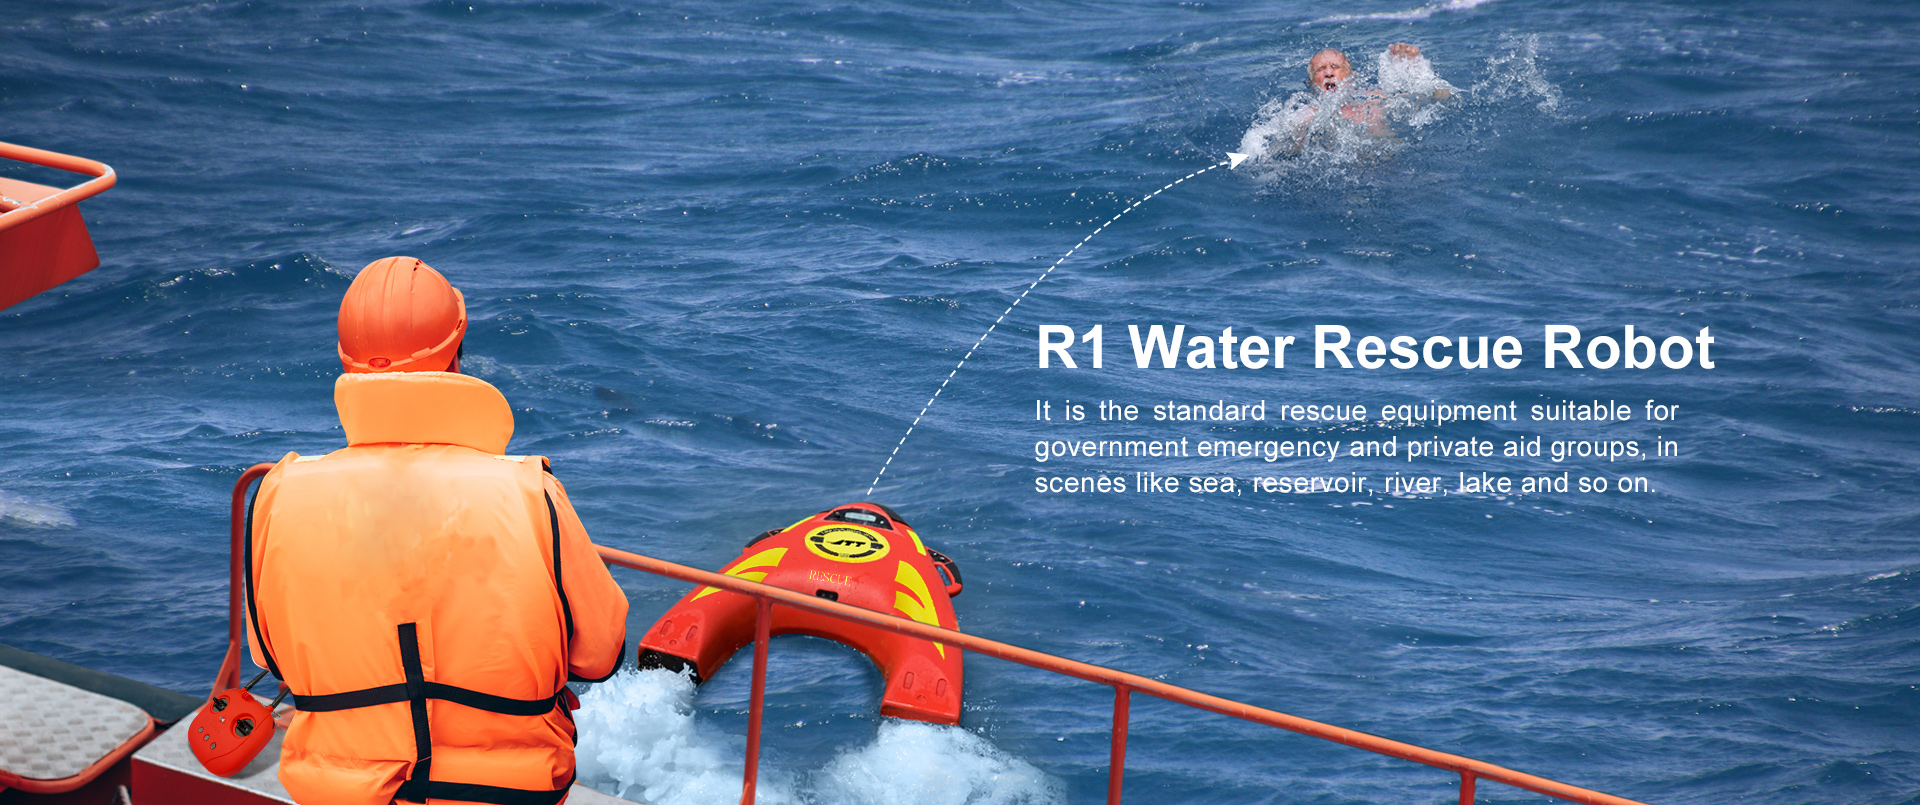 Water Rescue Robot R1